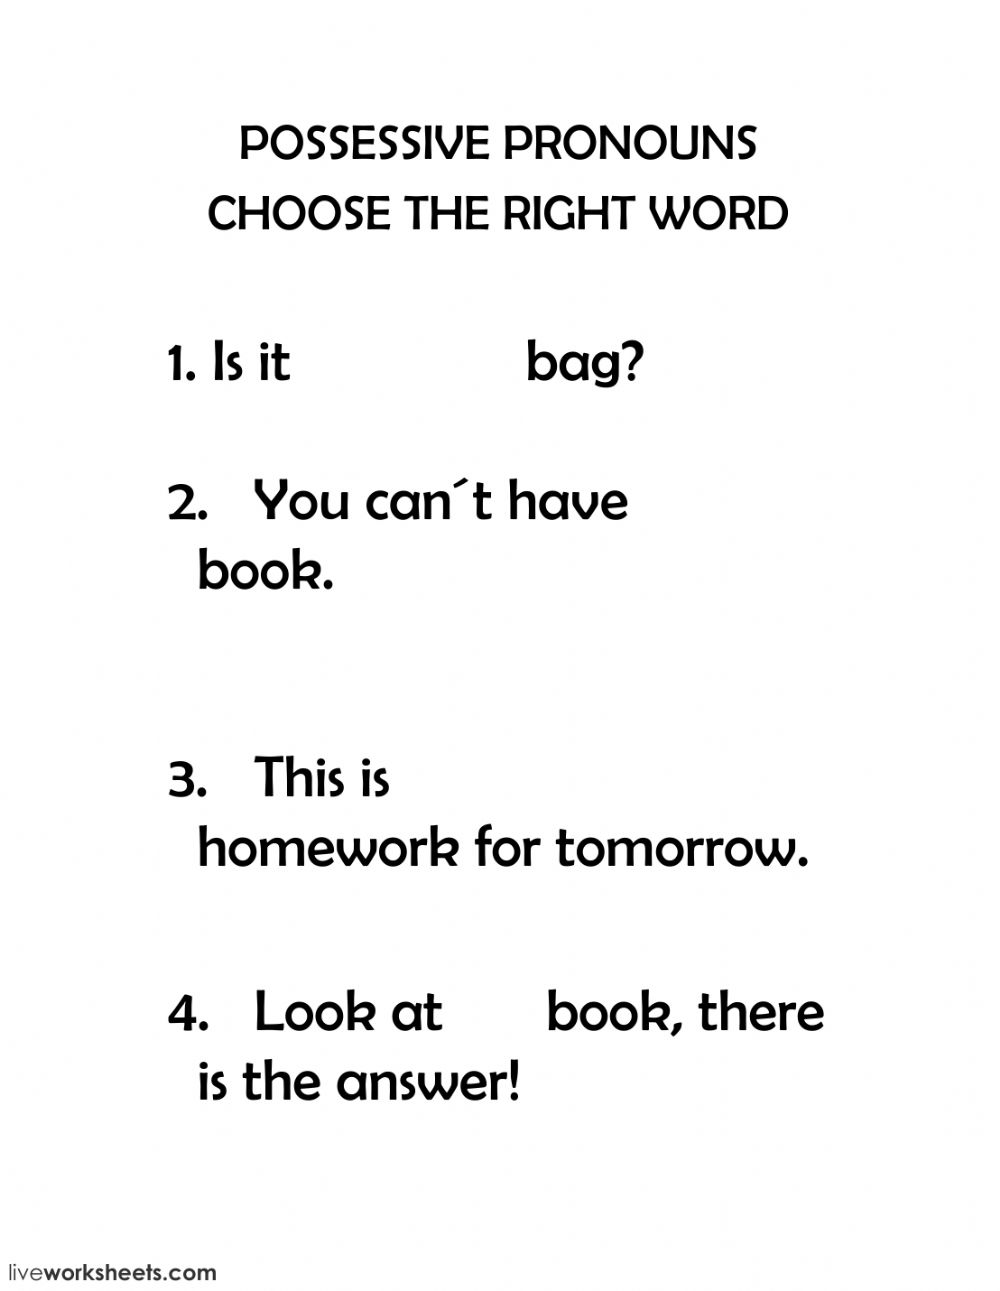 Possessive pronouns: online and pdf worksheet